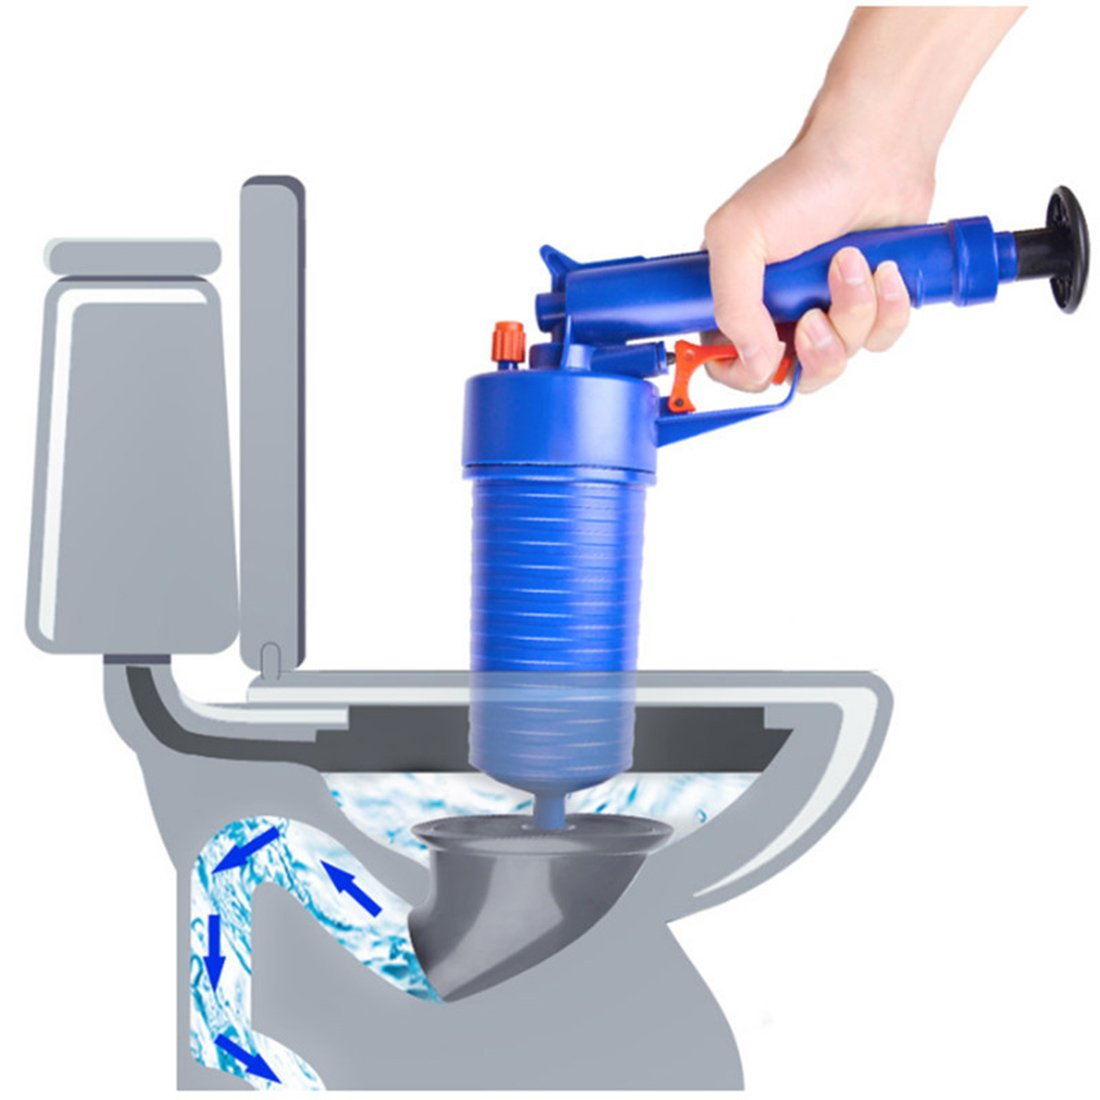 Verus Air Power Drain Blaster Gun, High Pressure Powerful Manual Sink Plunger Opener Cleaner Pump for Bath Toilets, Bathroom, Shower, Kitchen Clogged Pipe Bathtub